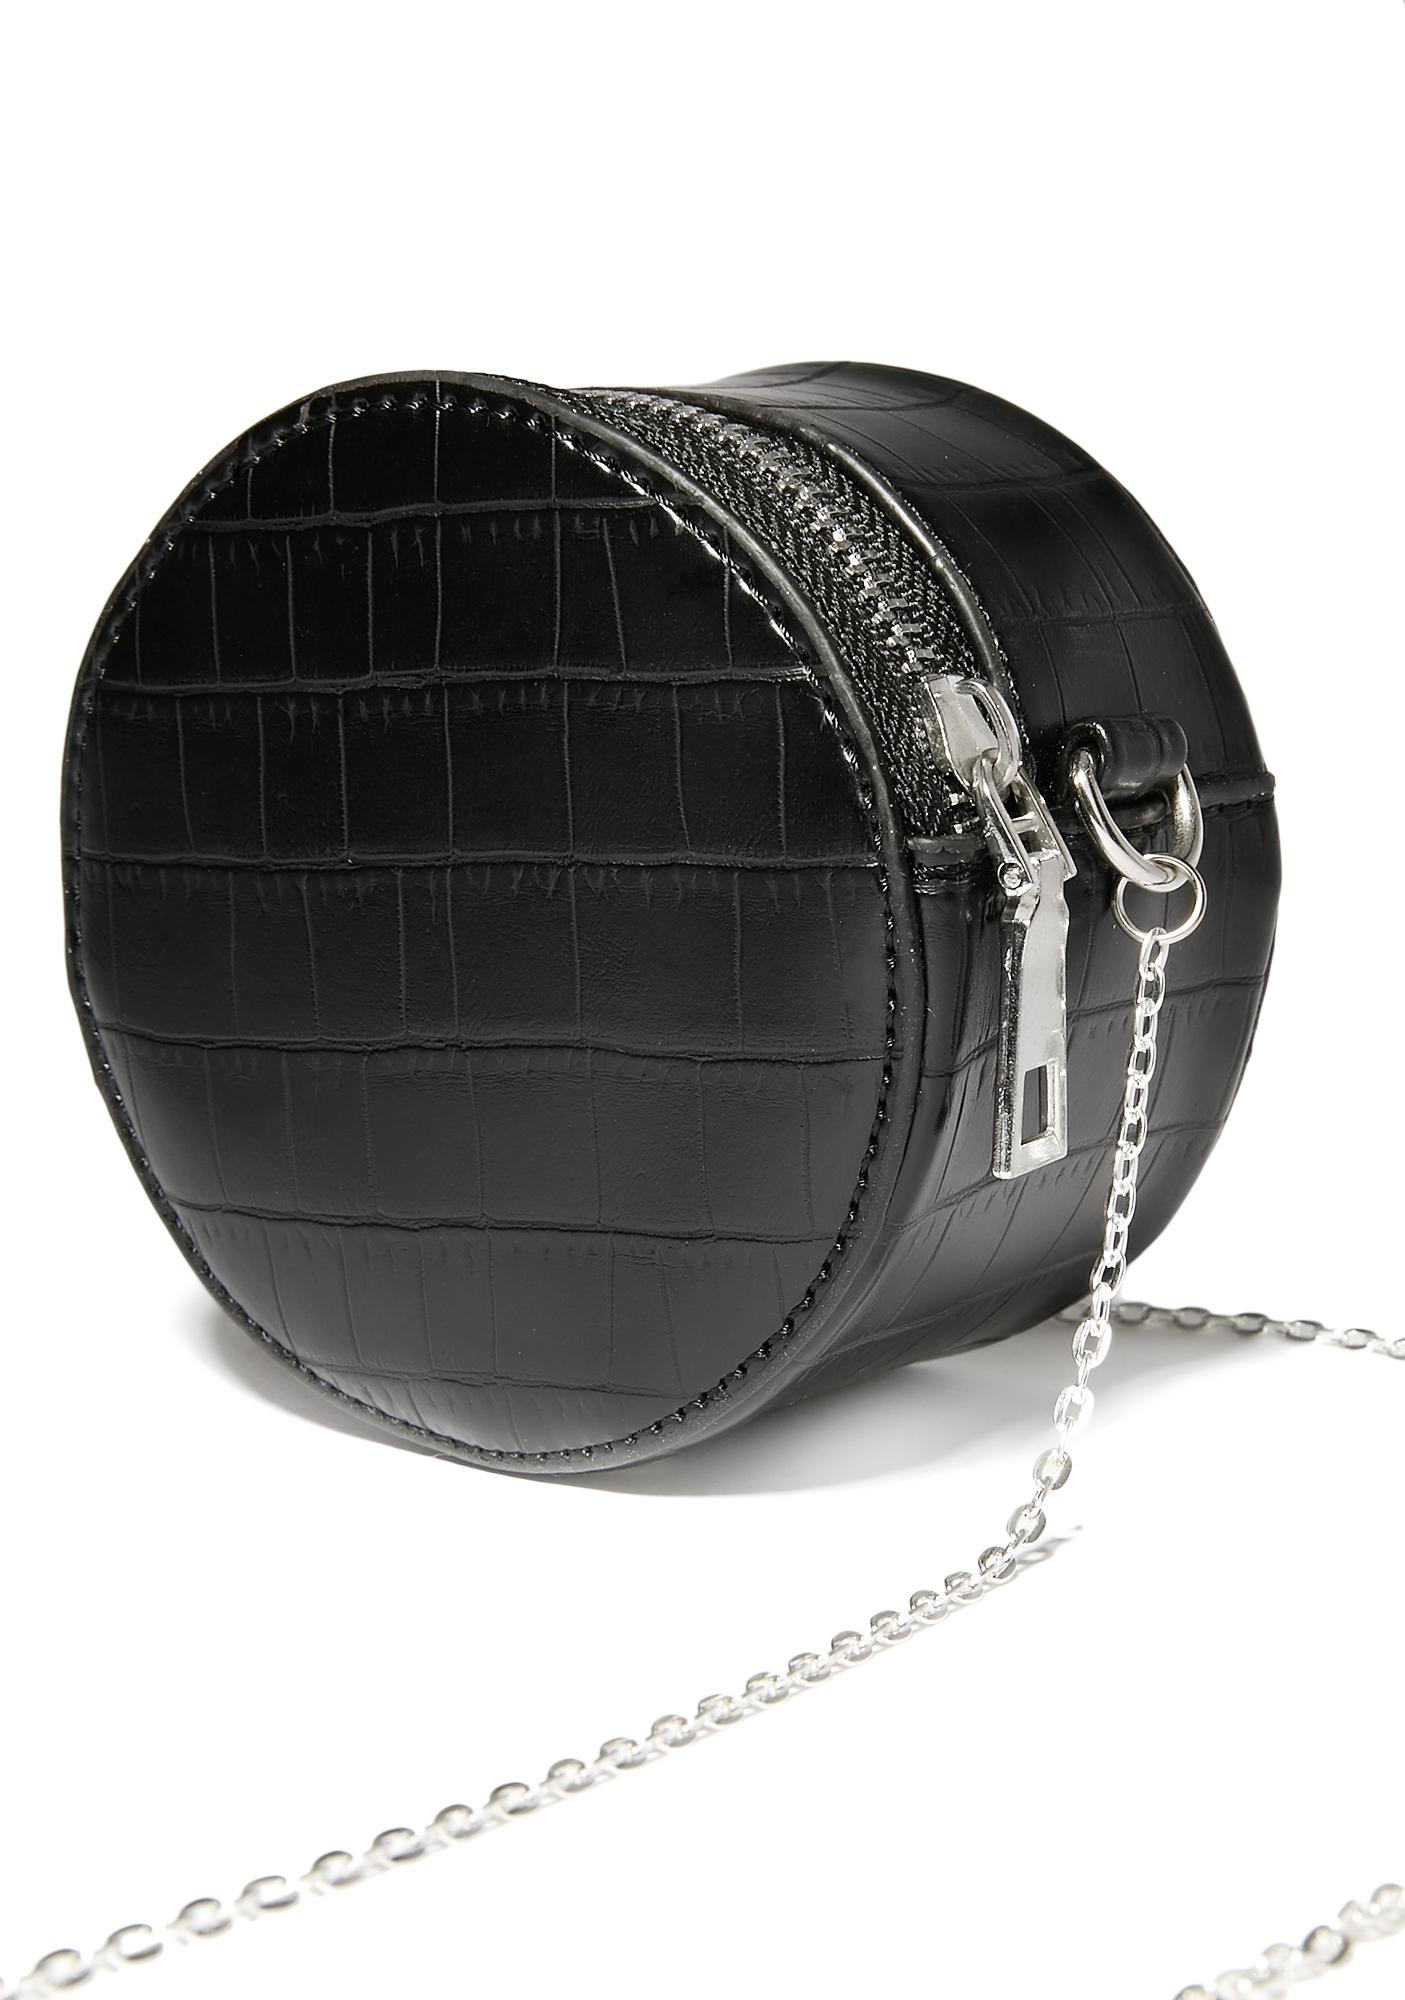 Potent Poison Round Crossbody Bag